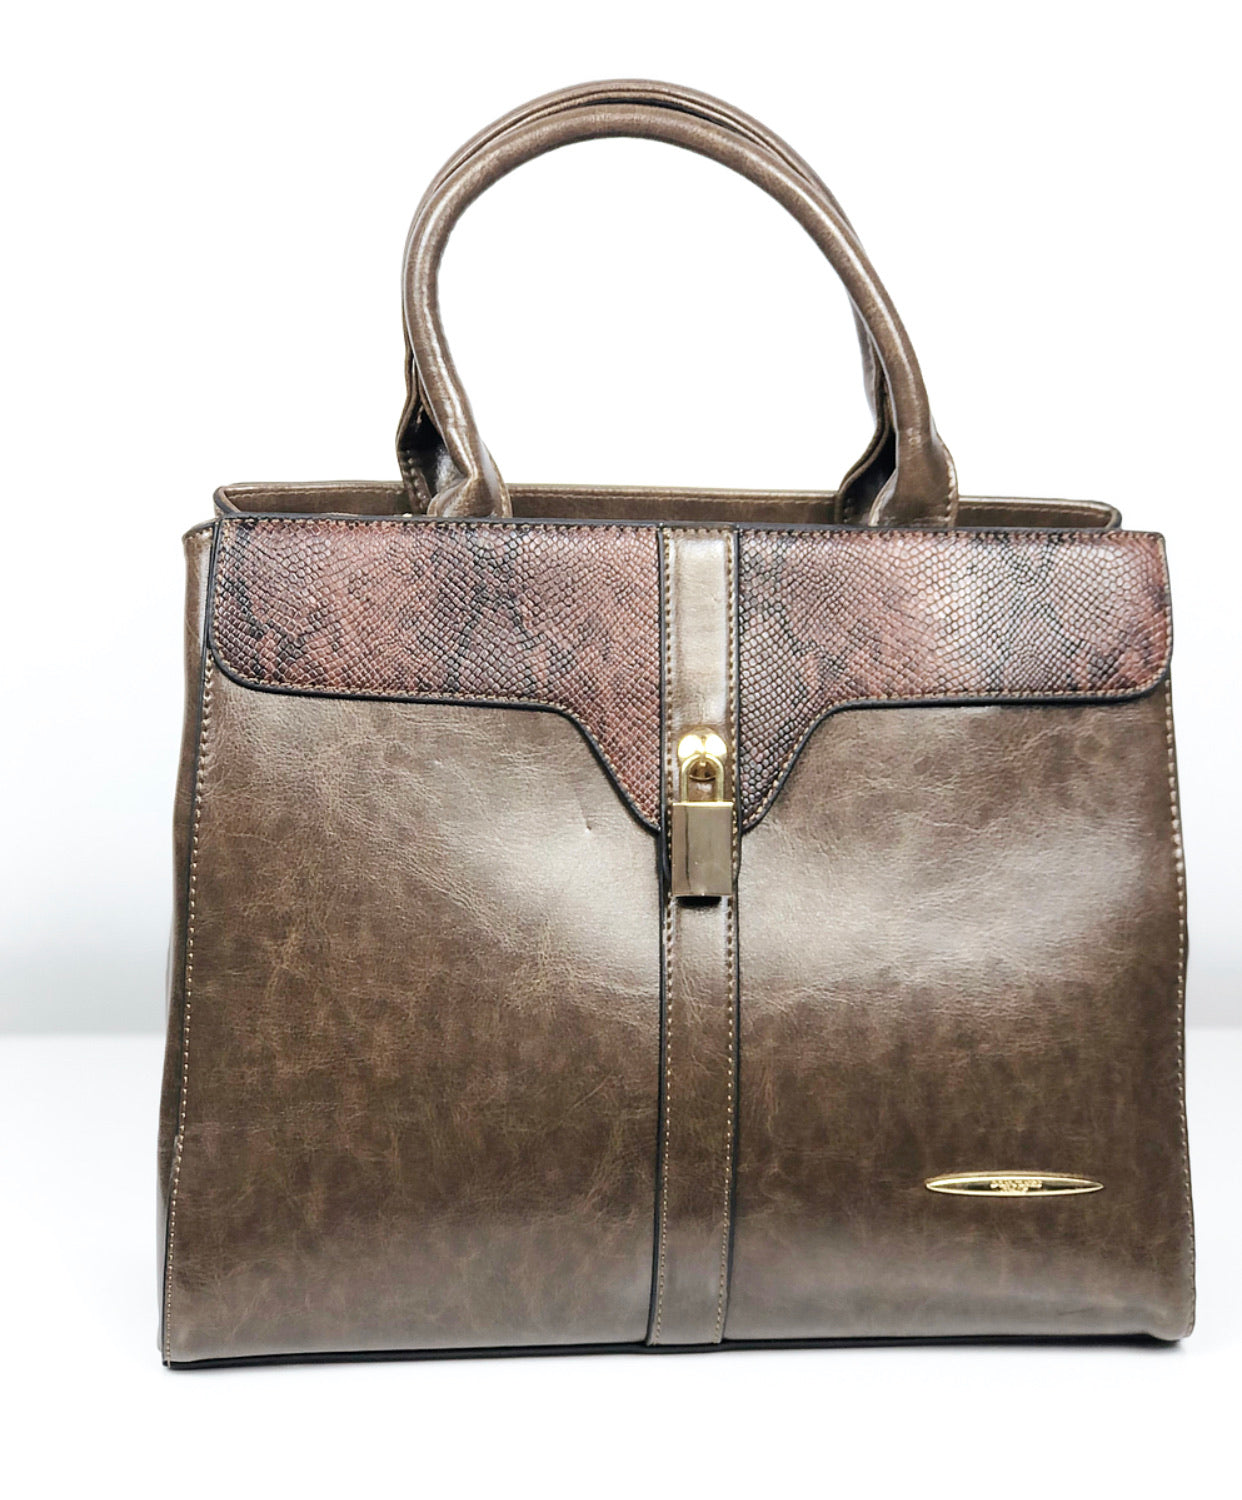 DON JONES OLIVE PADLOCK DETAIL SNAKEPRINT STRUCTURED BAG